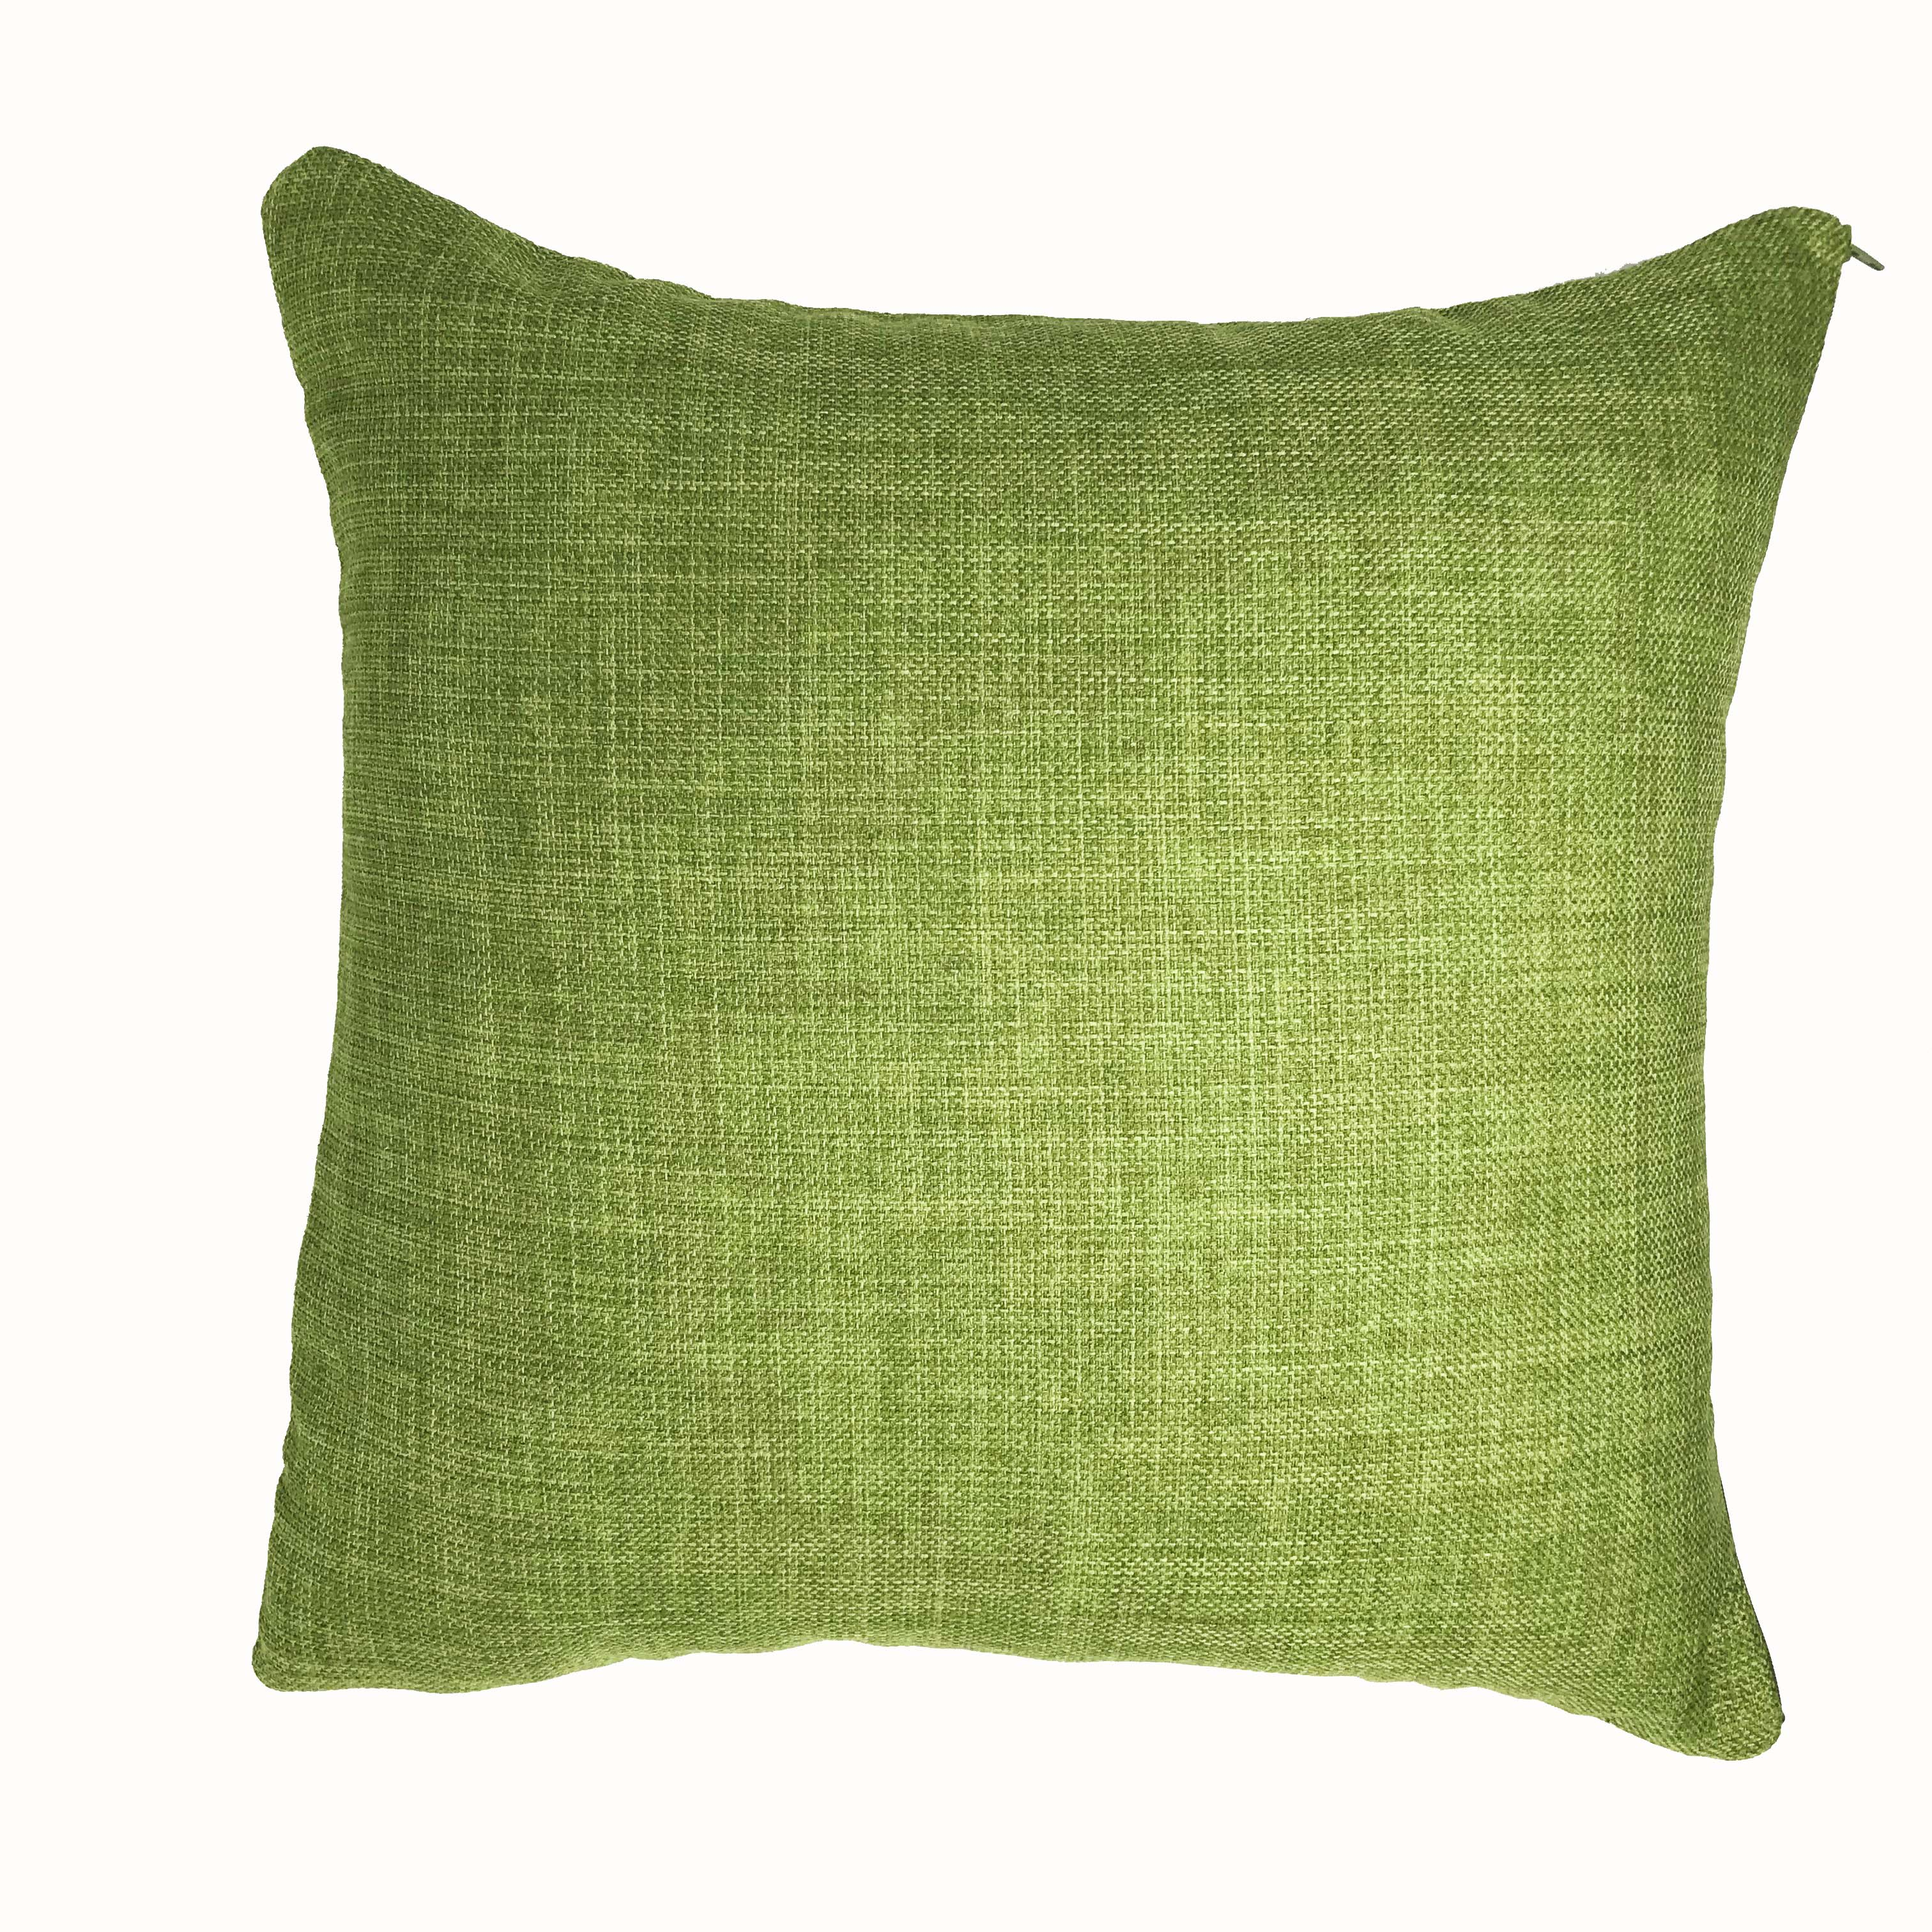 Linoso Green 45cm x 45cm Cushion Cover Only